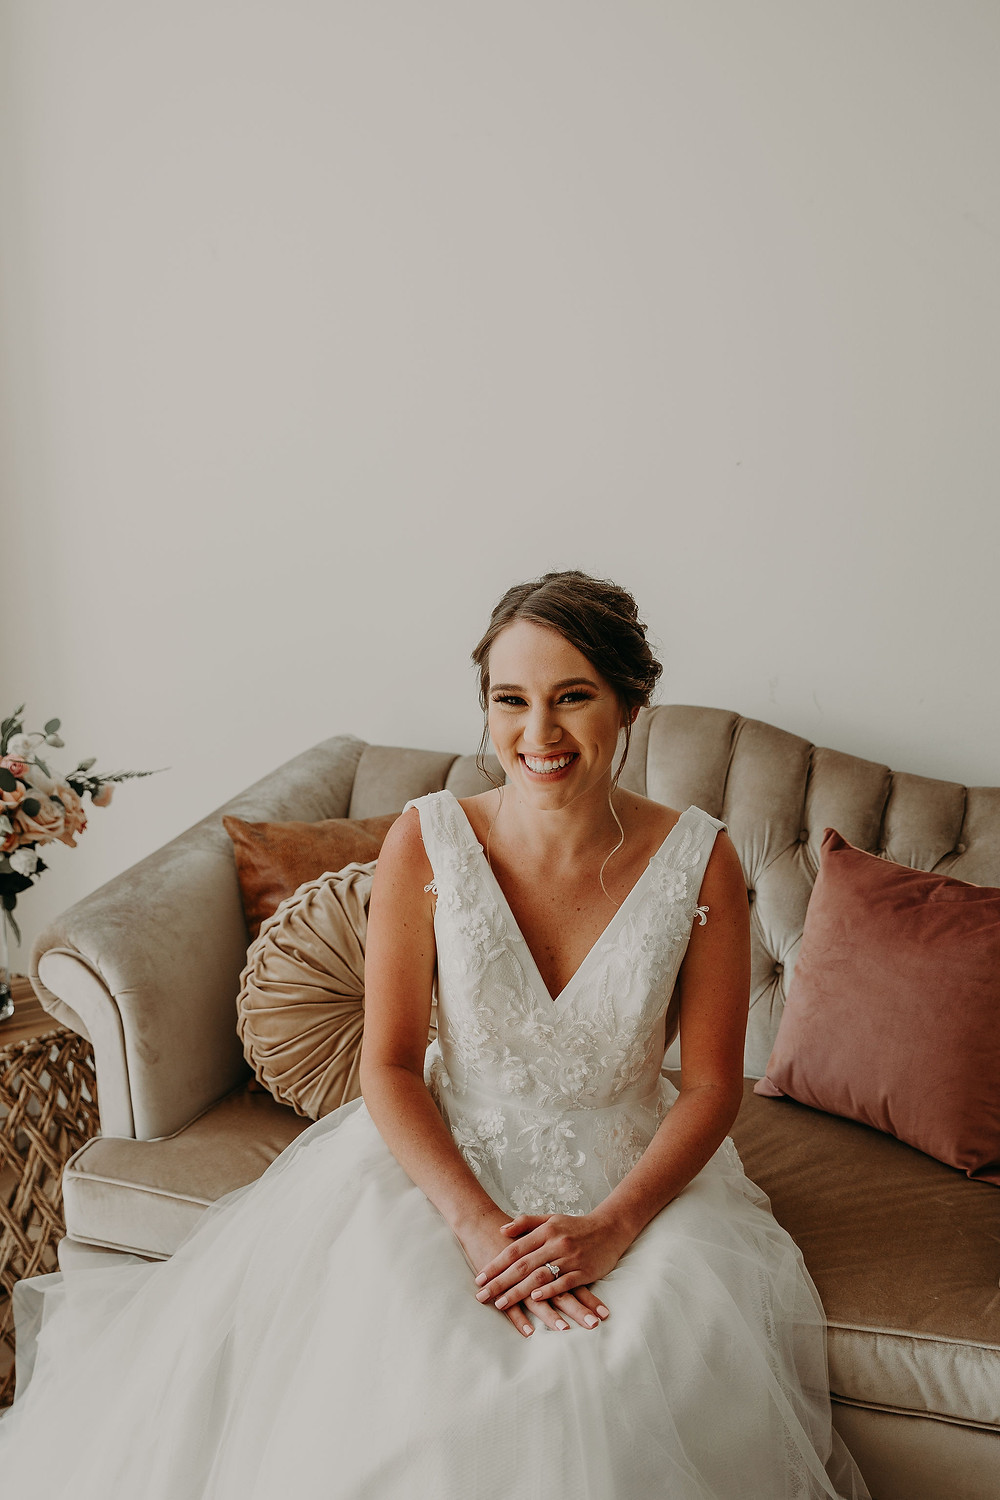 Bridal portrait: Summer Small Wedding at The Lincoln Loft